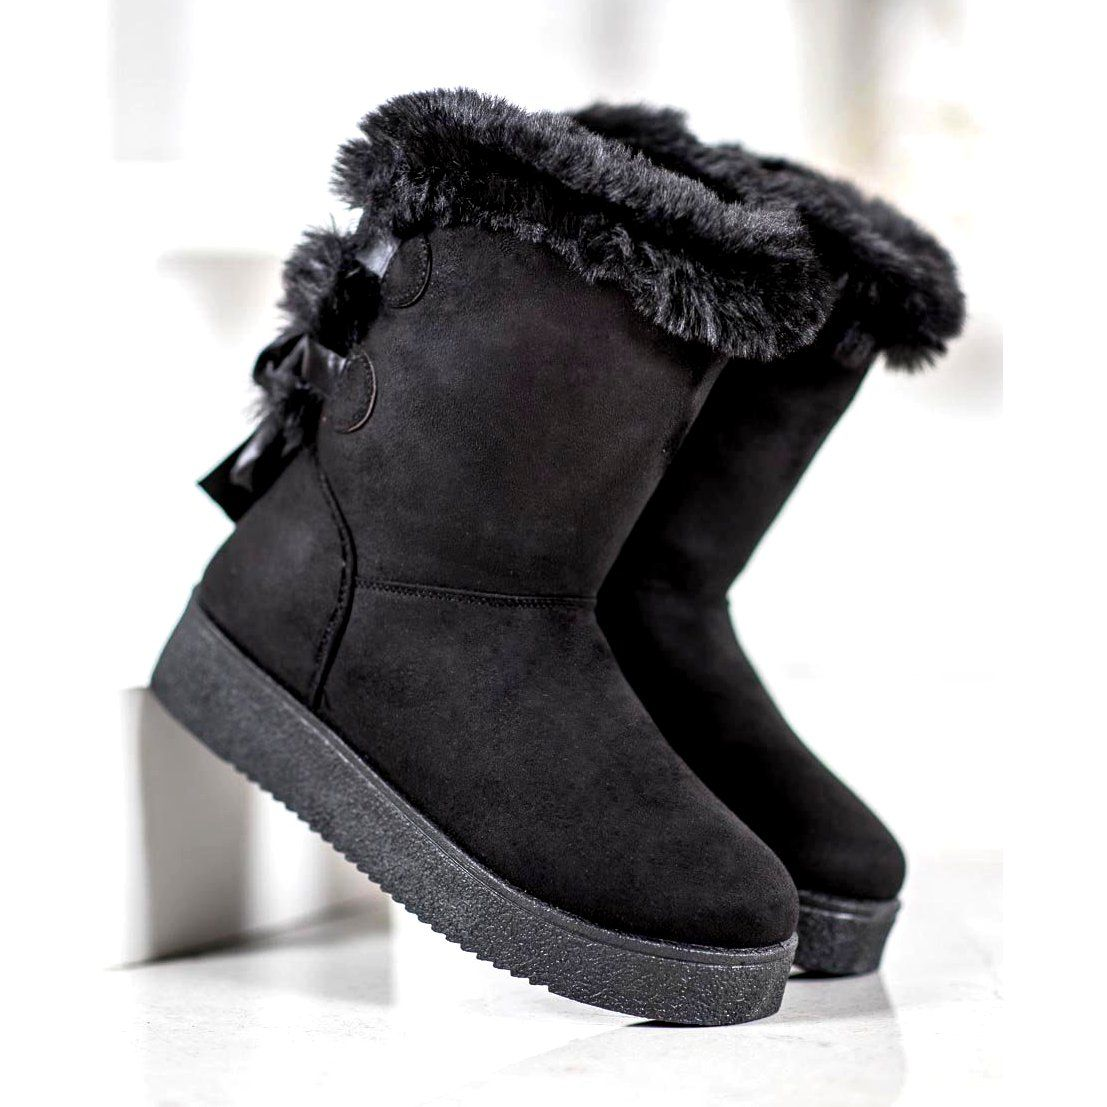 Shelovet Mukluki With A Bow Black Snow Boots Women Comfortable Shoes Types Of Heels